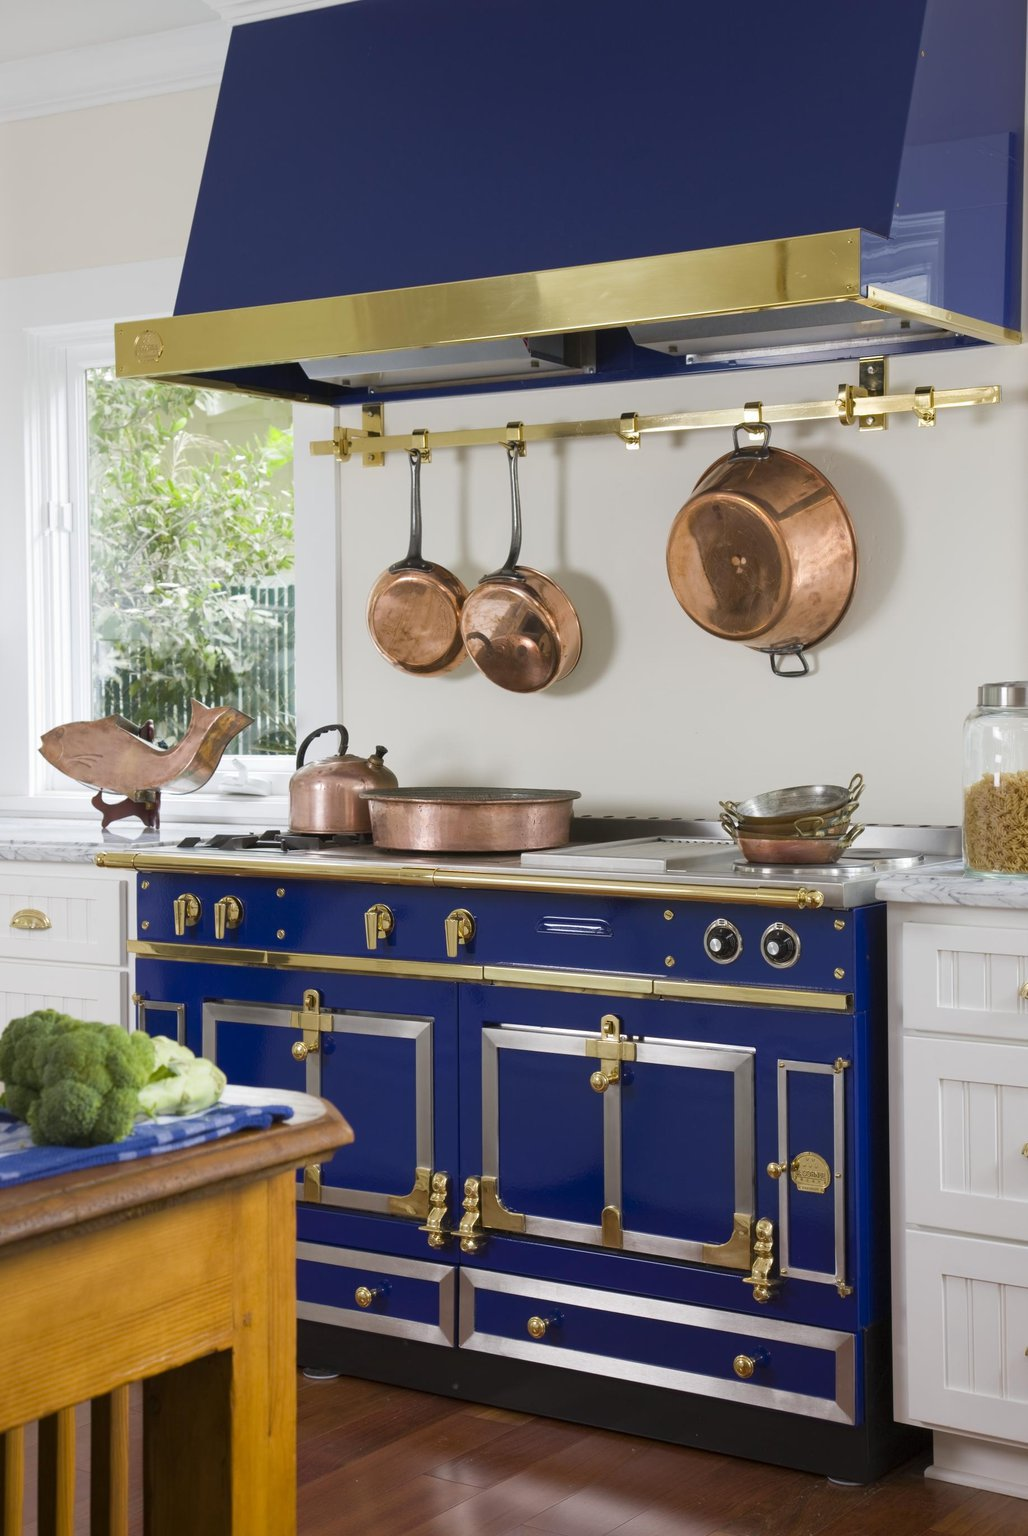 colored kitchen appliances chairs on casters be daring and try these colorful decoration